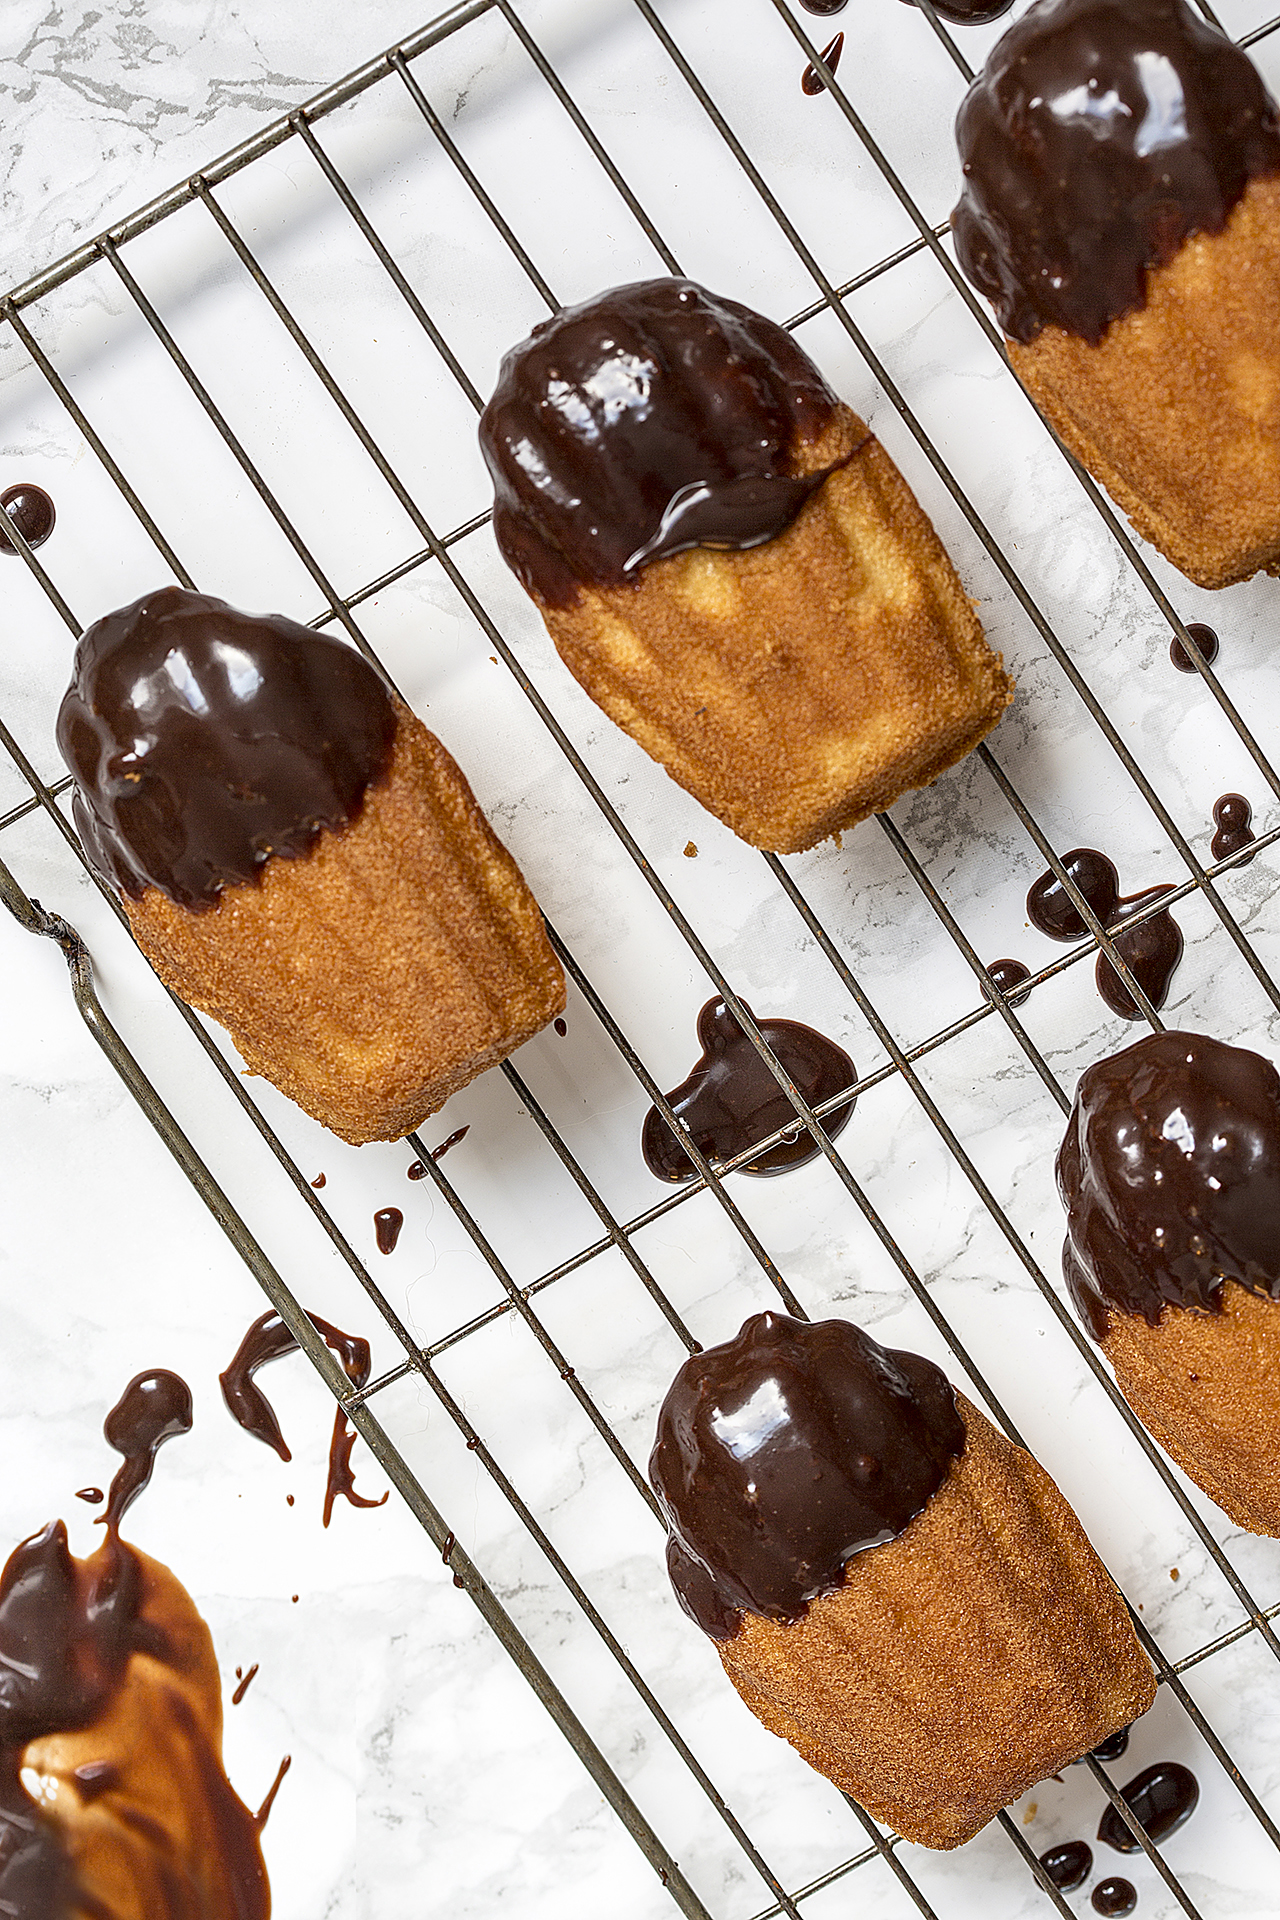 Food Photographer madeleines chocolate Commercial Photographer Liverpool, Food Photographer Liverpool, Manchester, Leeds, Preston, Blackburn,